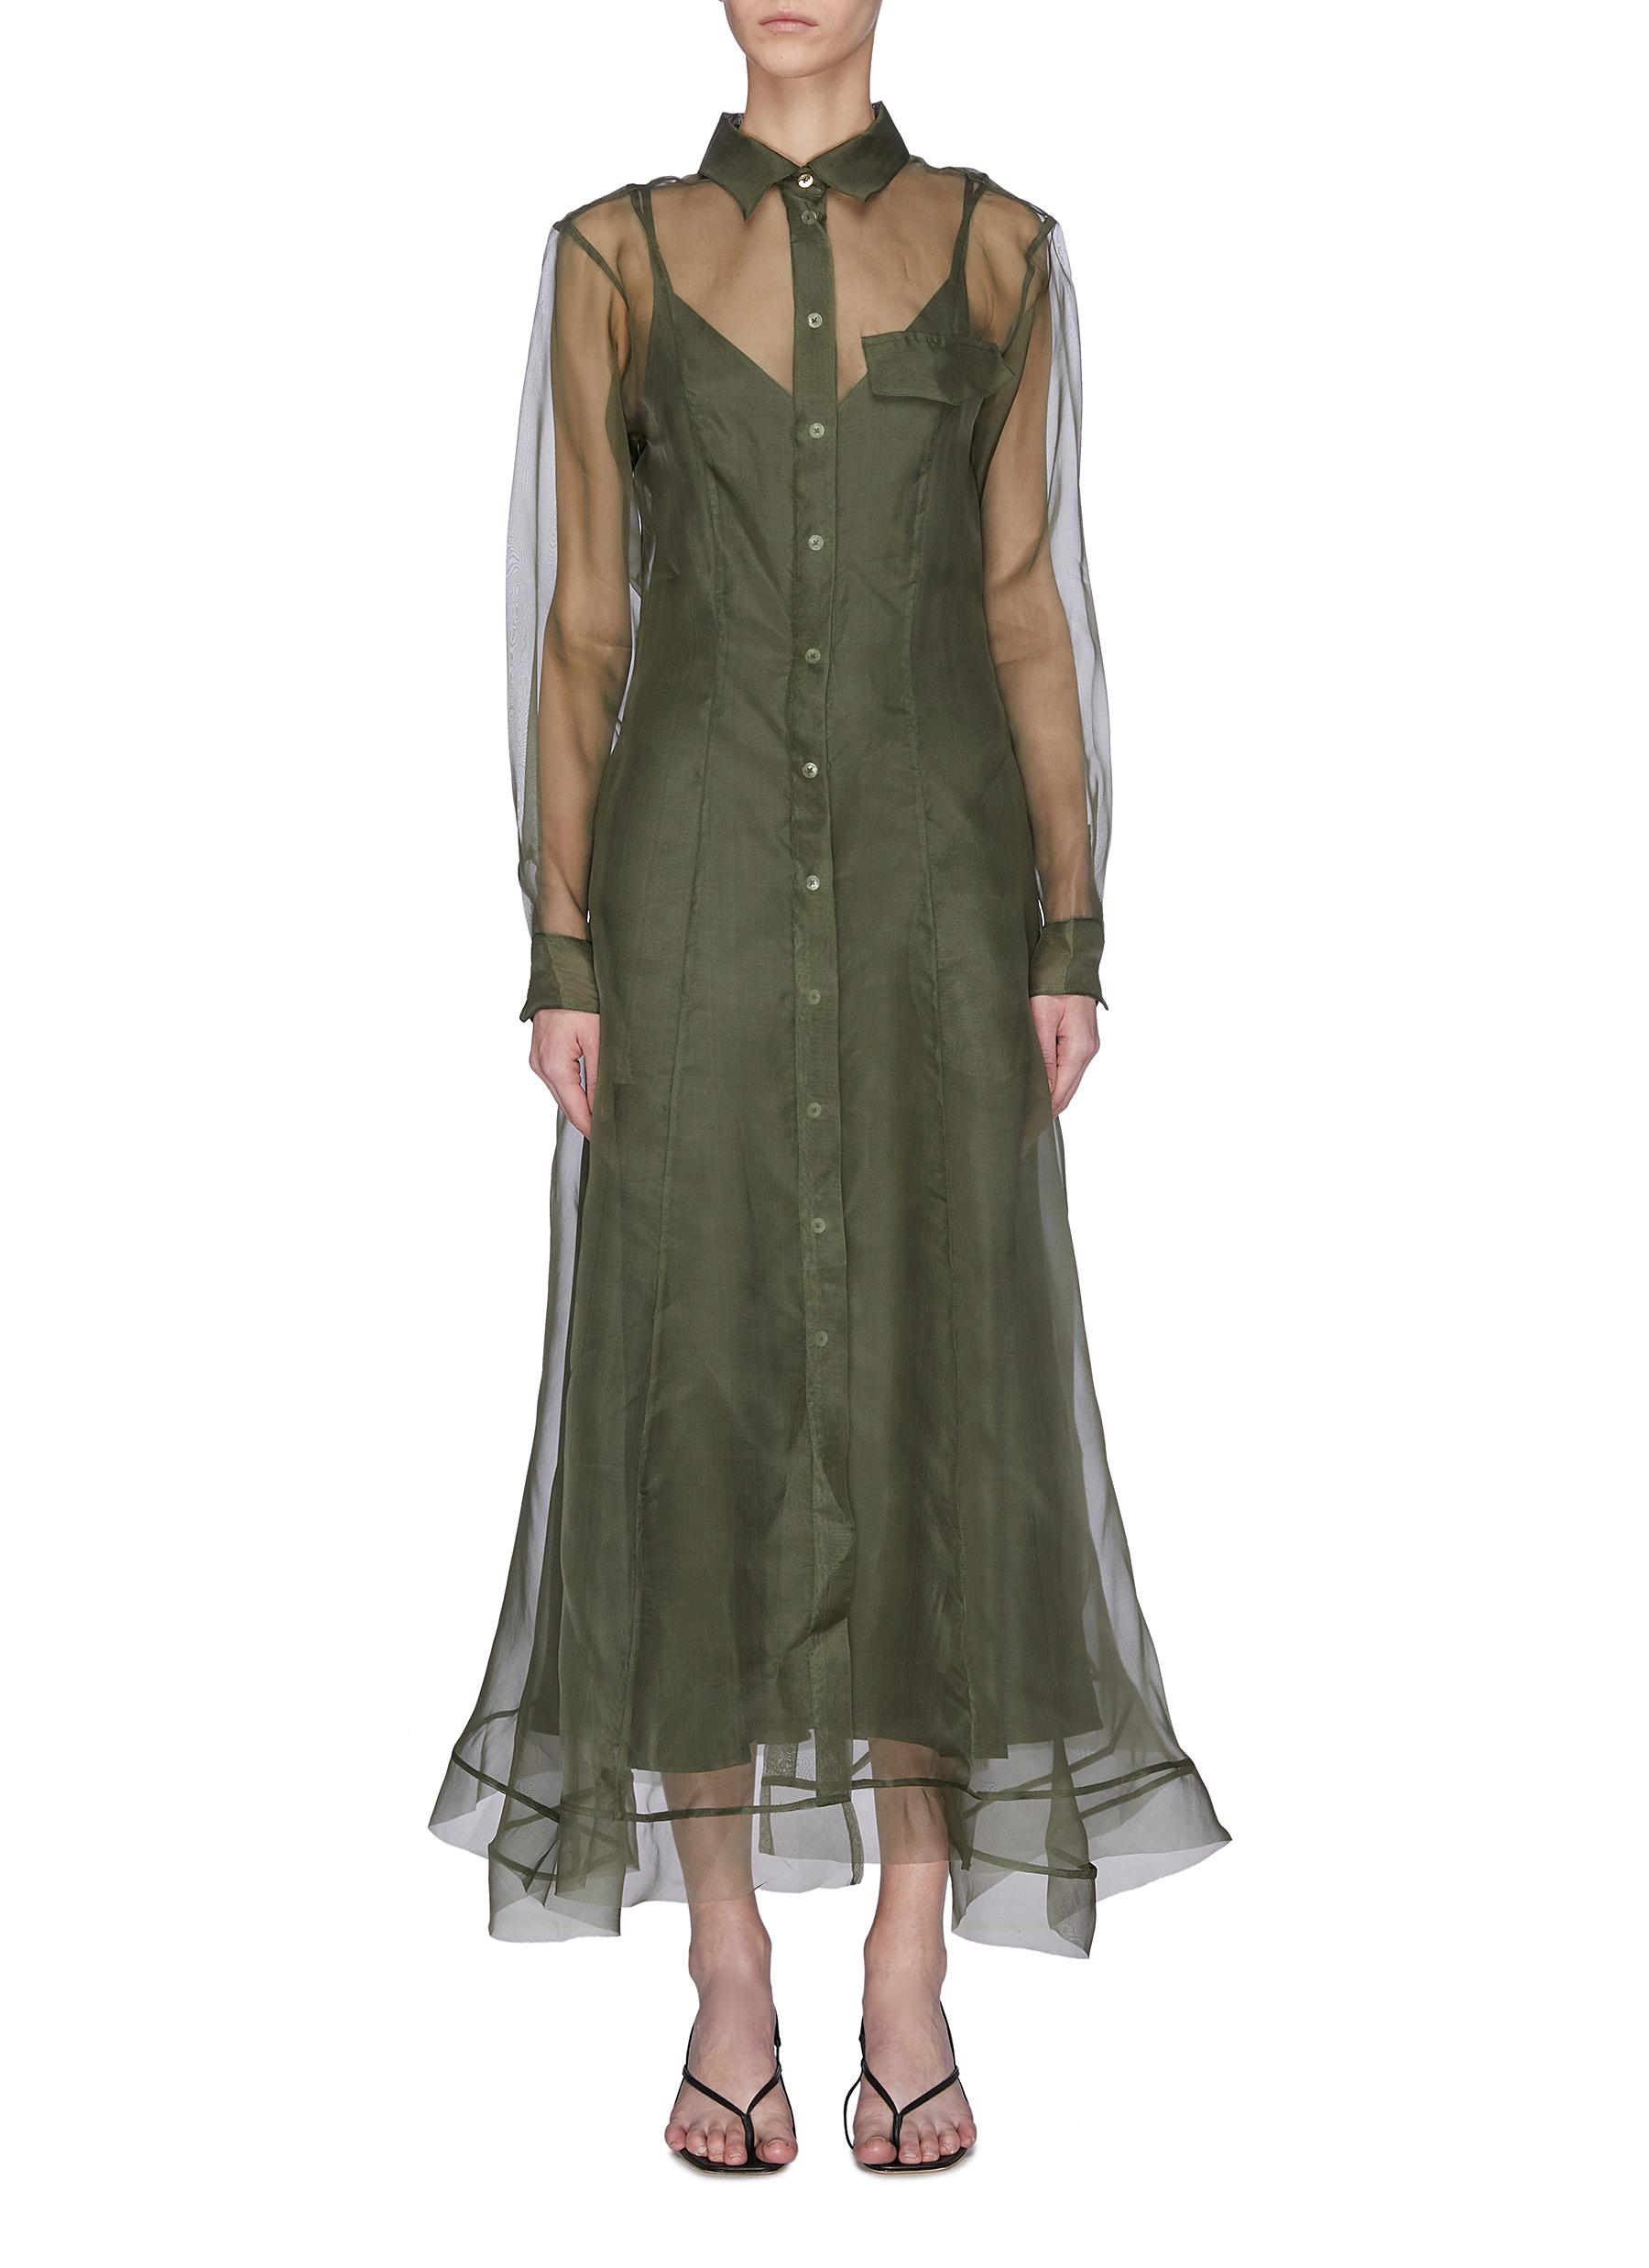 Buy Maggie Marilyn Dresses 'Keep it together' sheer panel shirt dress